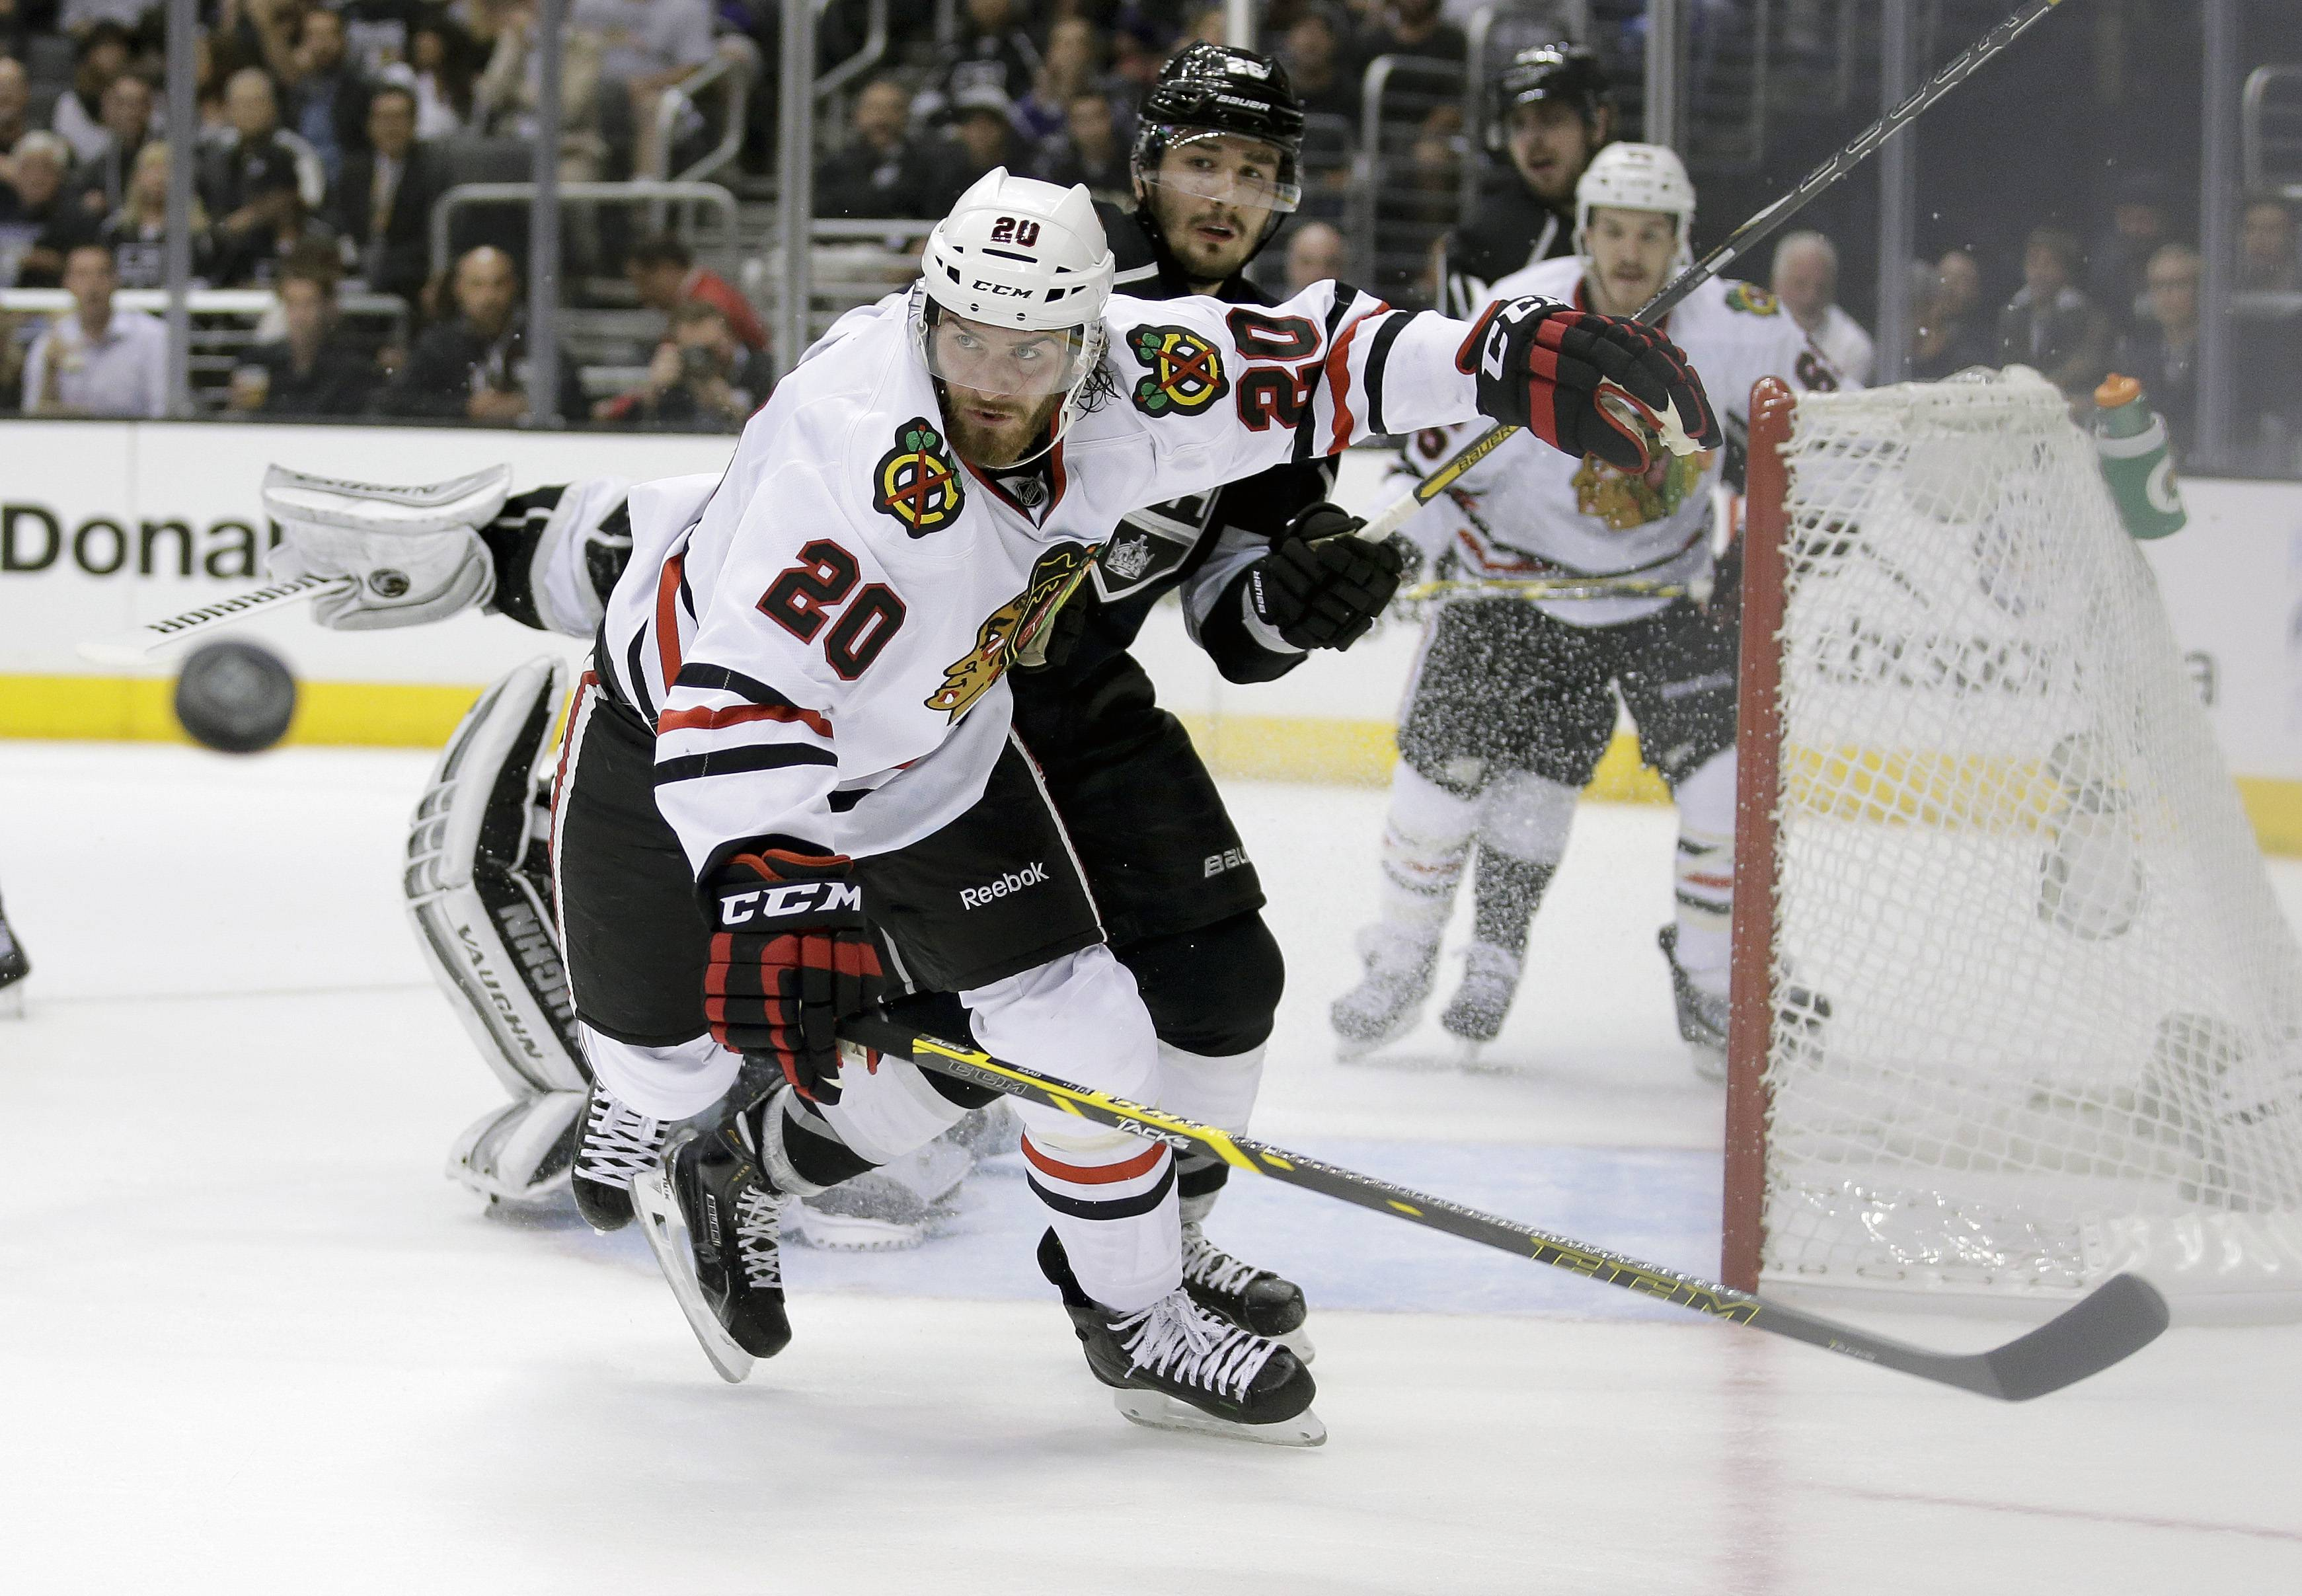 Chicago Blackhawks left wing Brandon Saad, left, and Los Angeles Kings defenseman Slava Voynov go after the puck during the first period of Game 4 of the Western Conference finals of the NHL hockey Stanley Cup playoffs in Los Angeles, Monday, May 26, 2014.